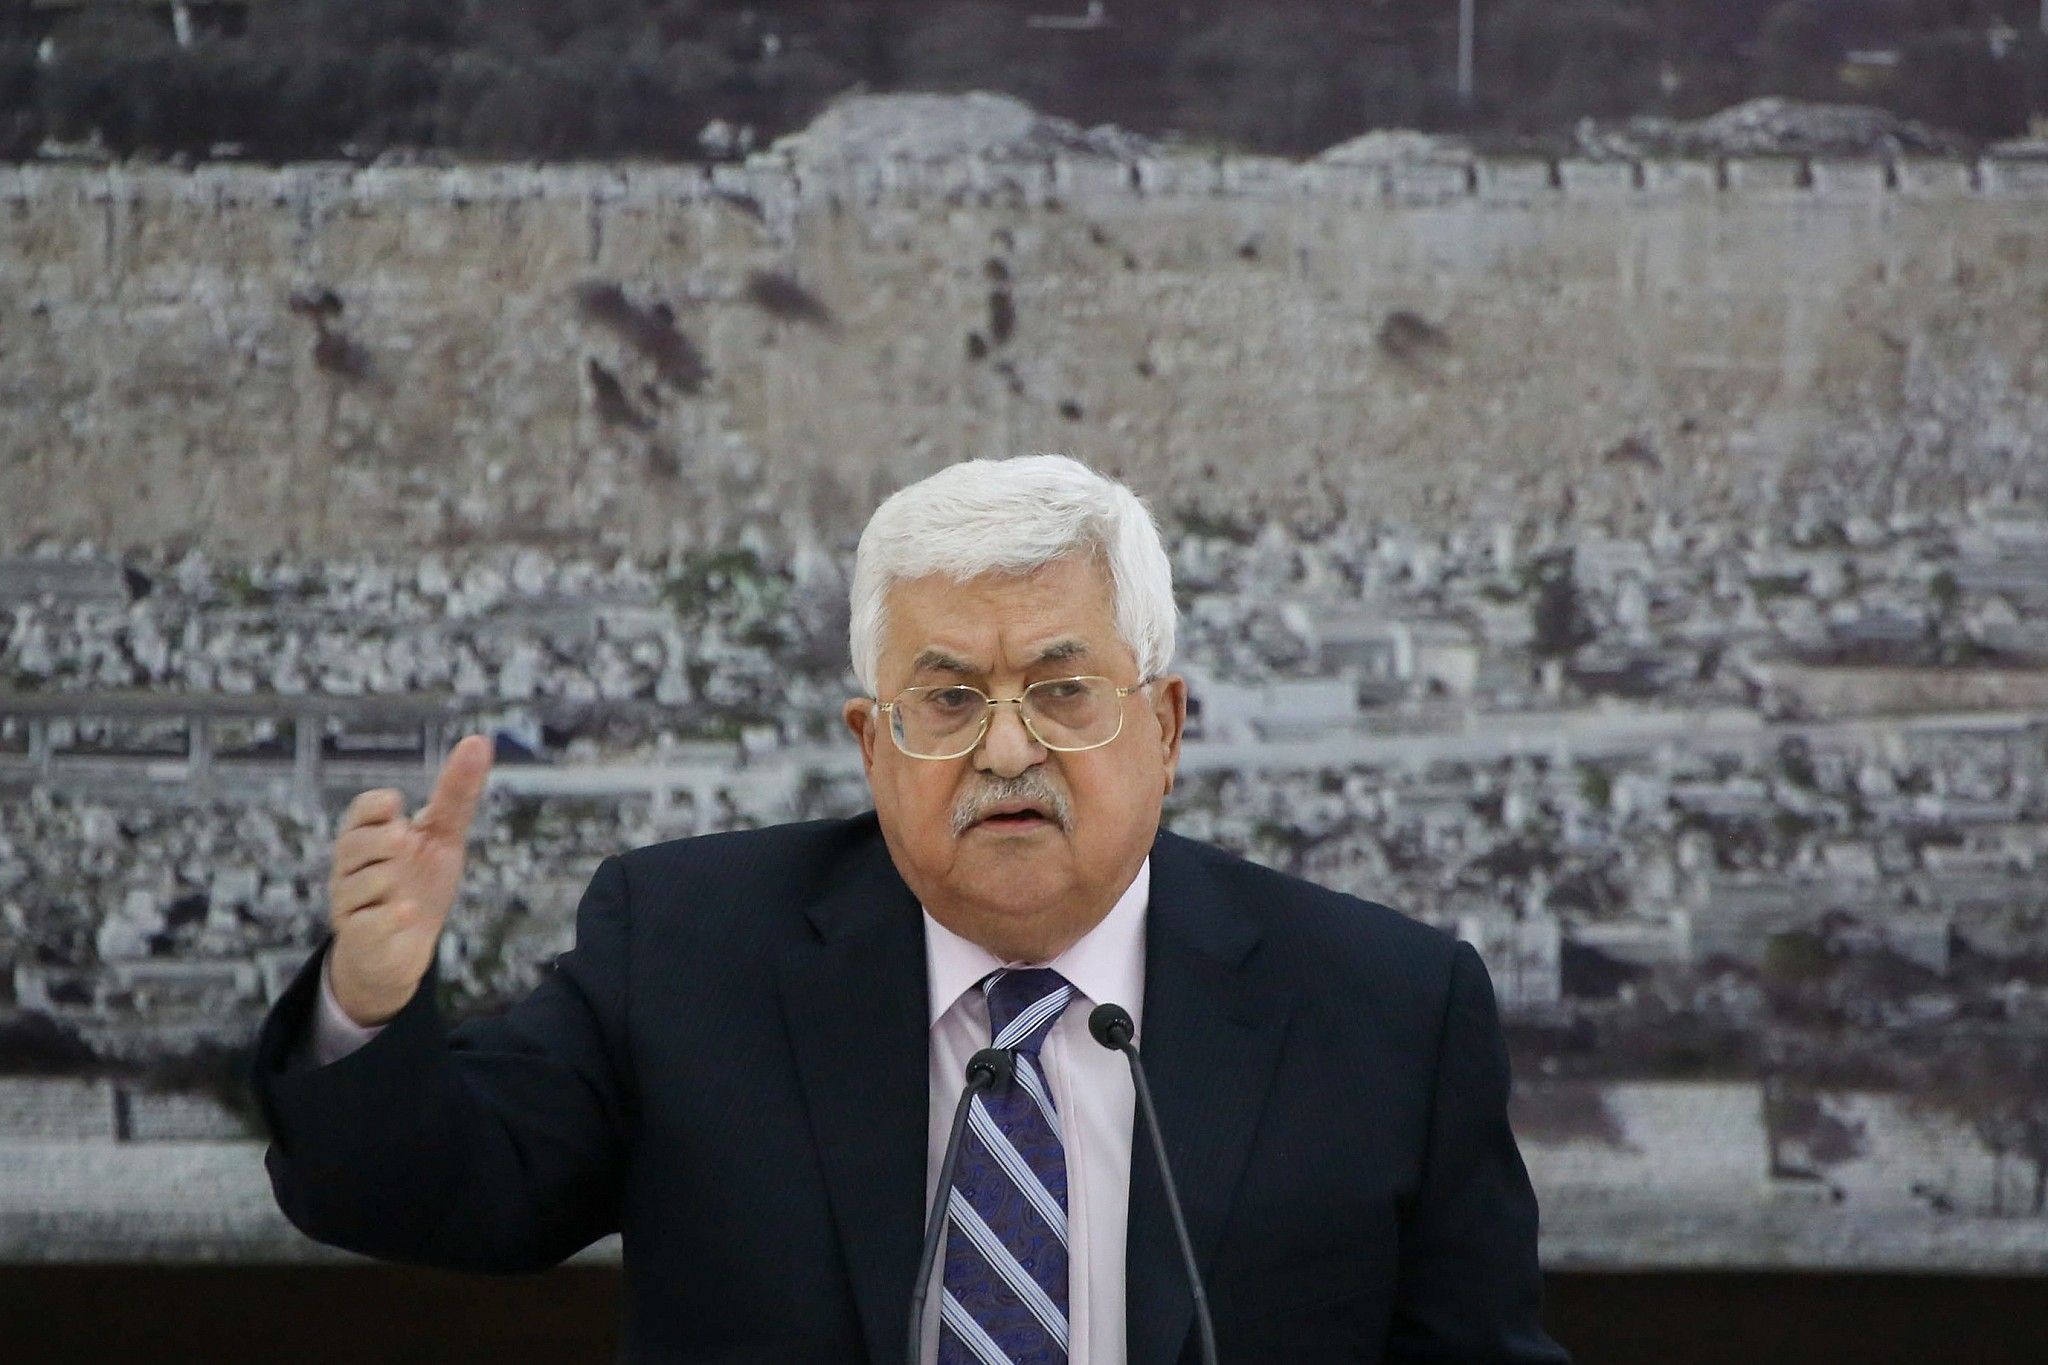 White House takes aim at Abbas after 'son of a dog' insult